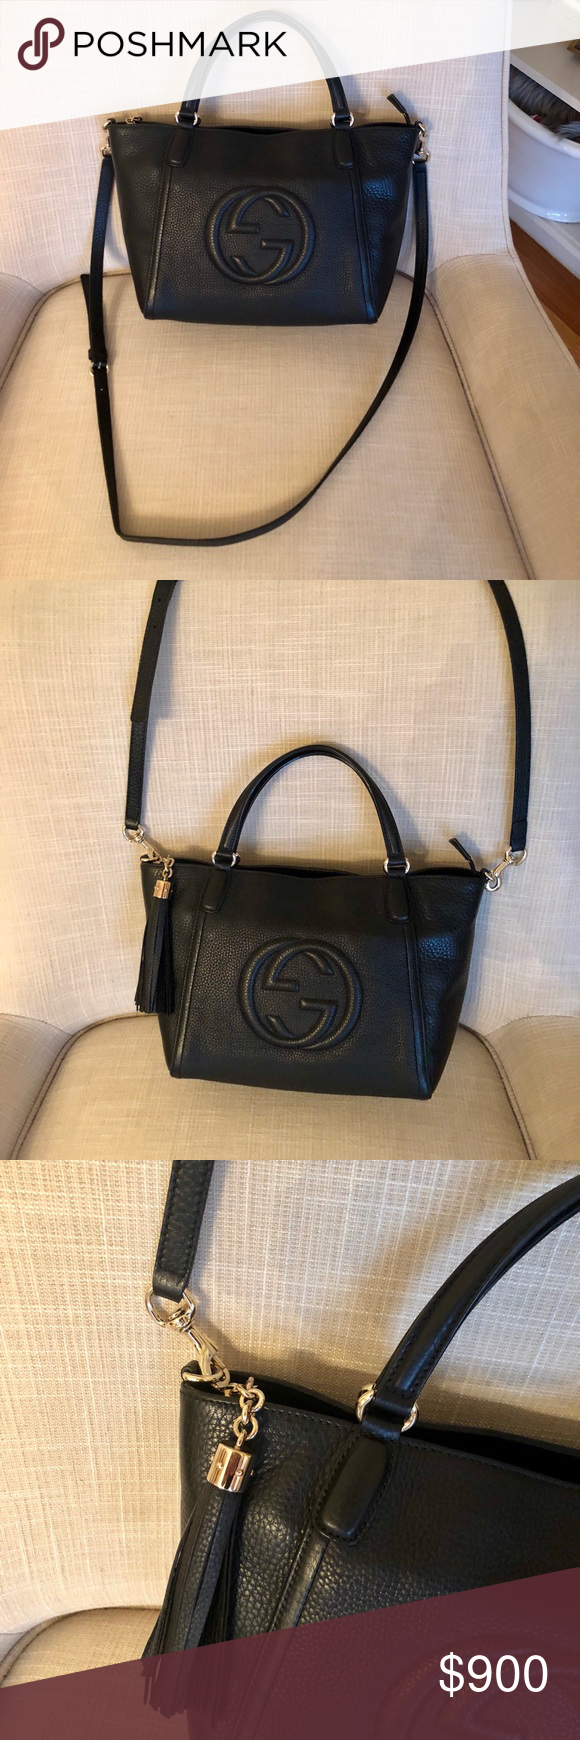 890fcc137eca Gucci Soho Convertible Top Leather Tote Like new. Authentic. Gucci Bags  Crossbody Bags